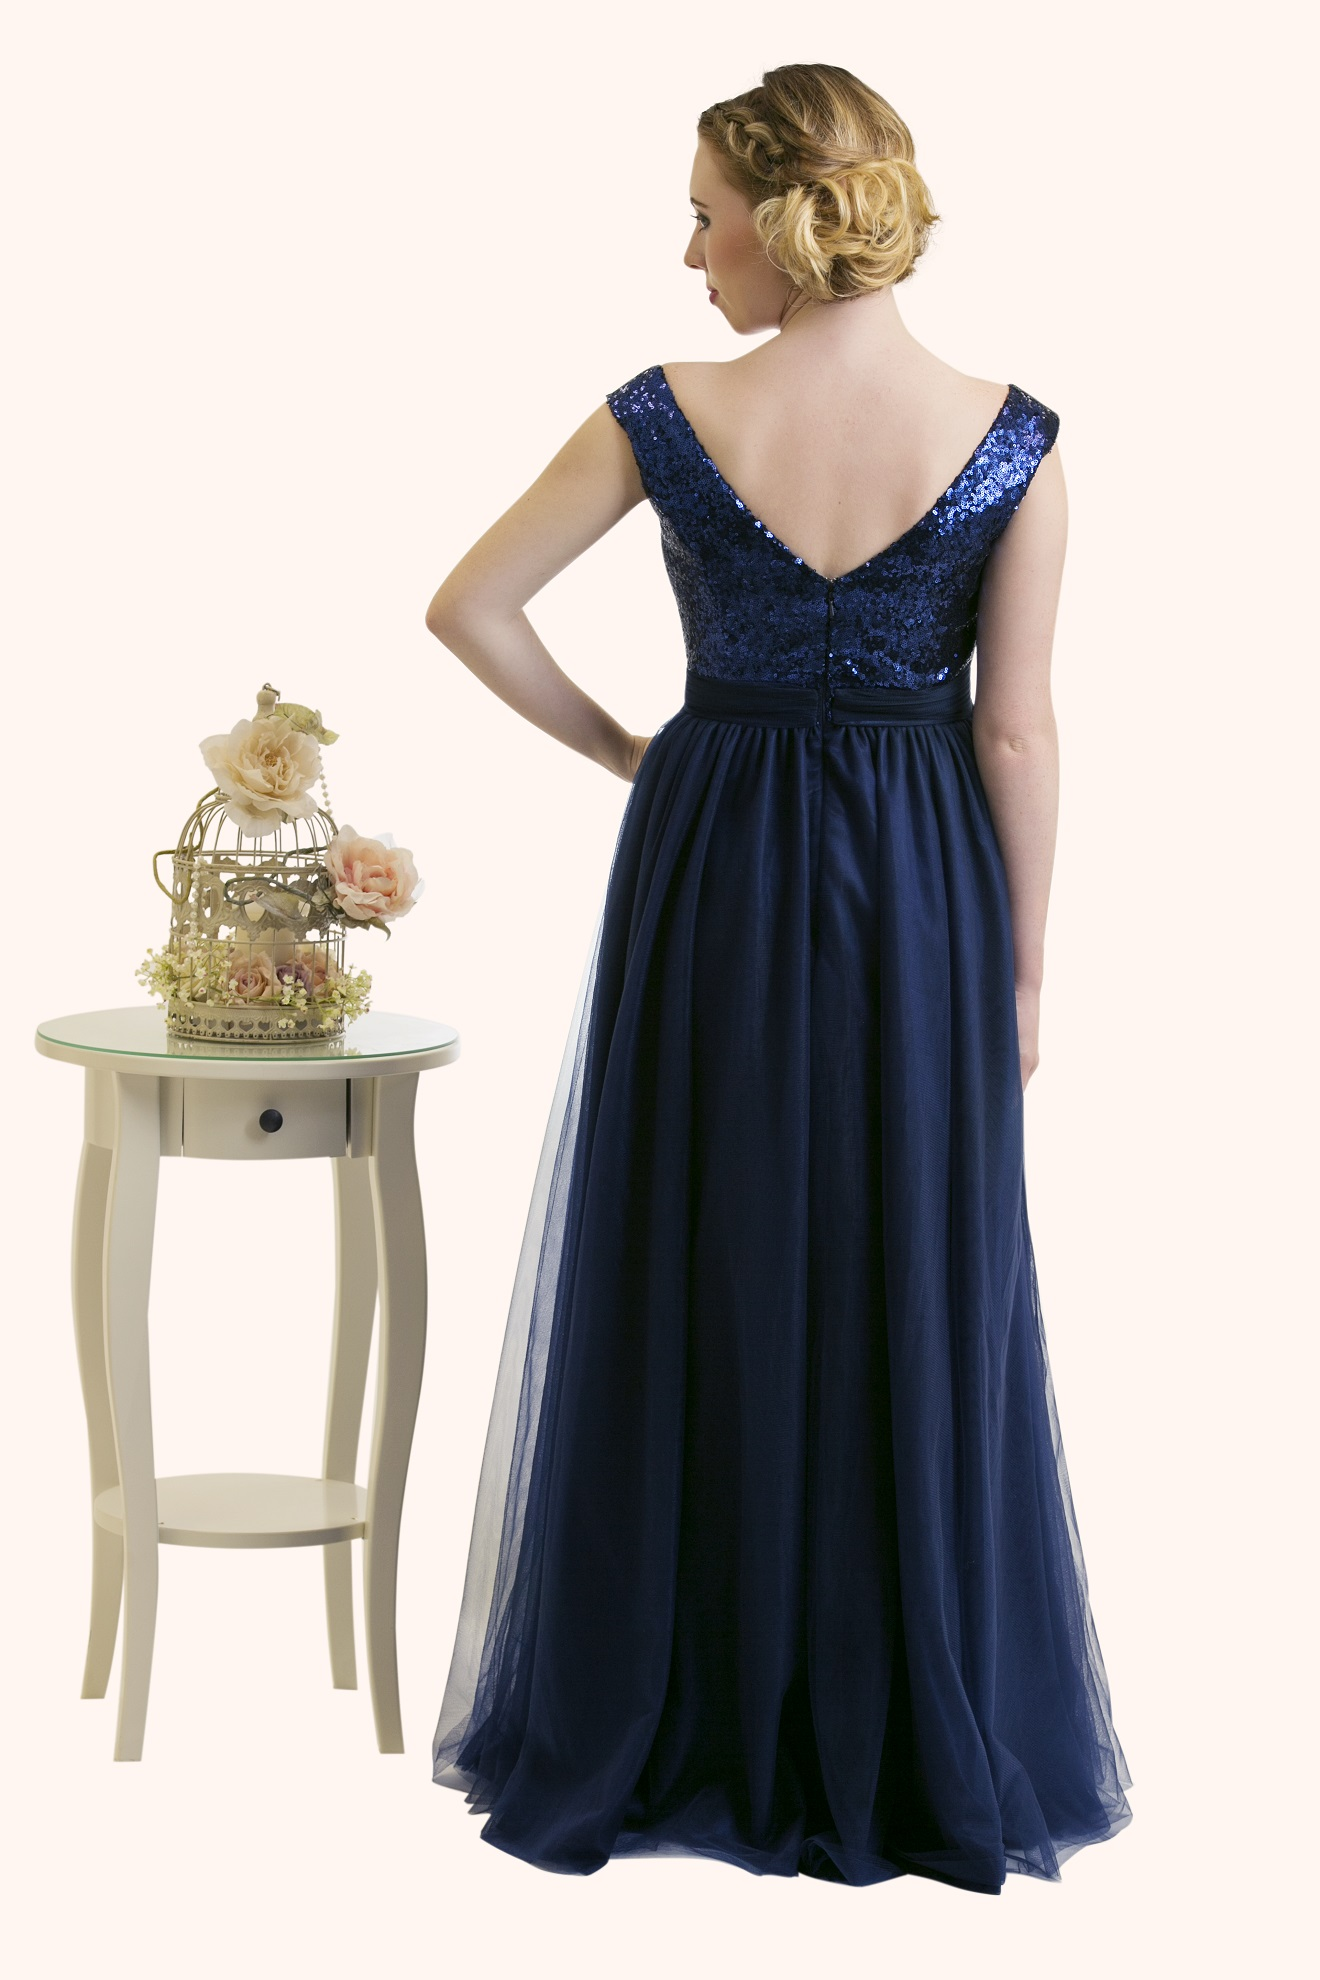 Estilo Moda Milton Keynes Estilo Moda Milton Keynes Faye ball gown sequin and tulle prom dress. navy blue evening dress, blue sequin bridesmaid dress